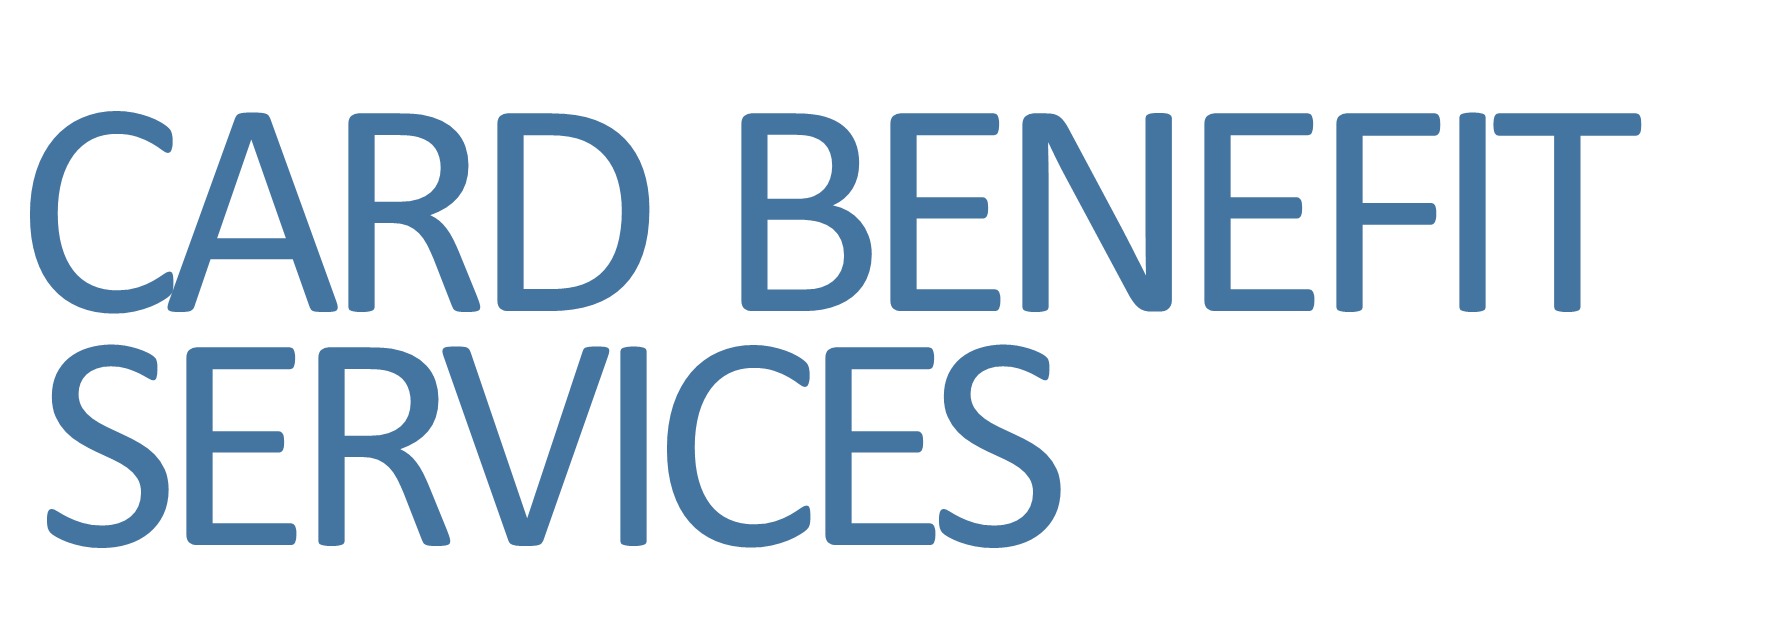 Visa Card Benefit Services